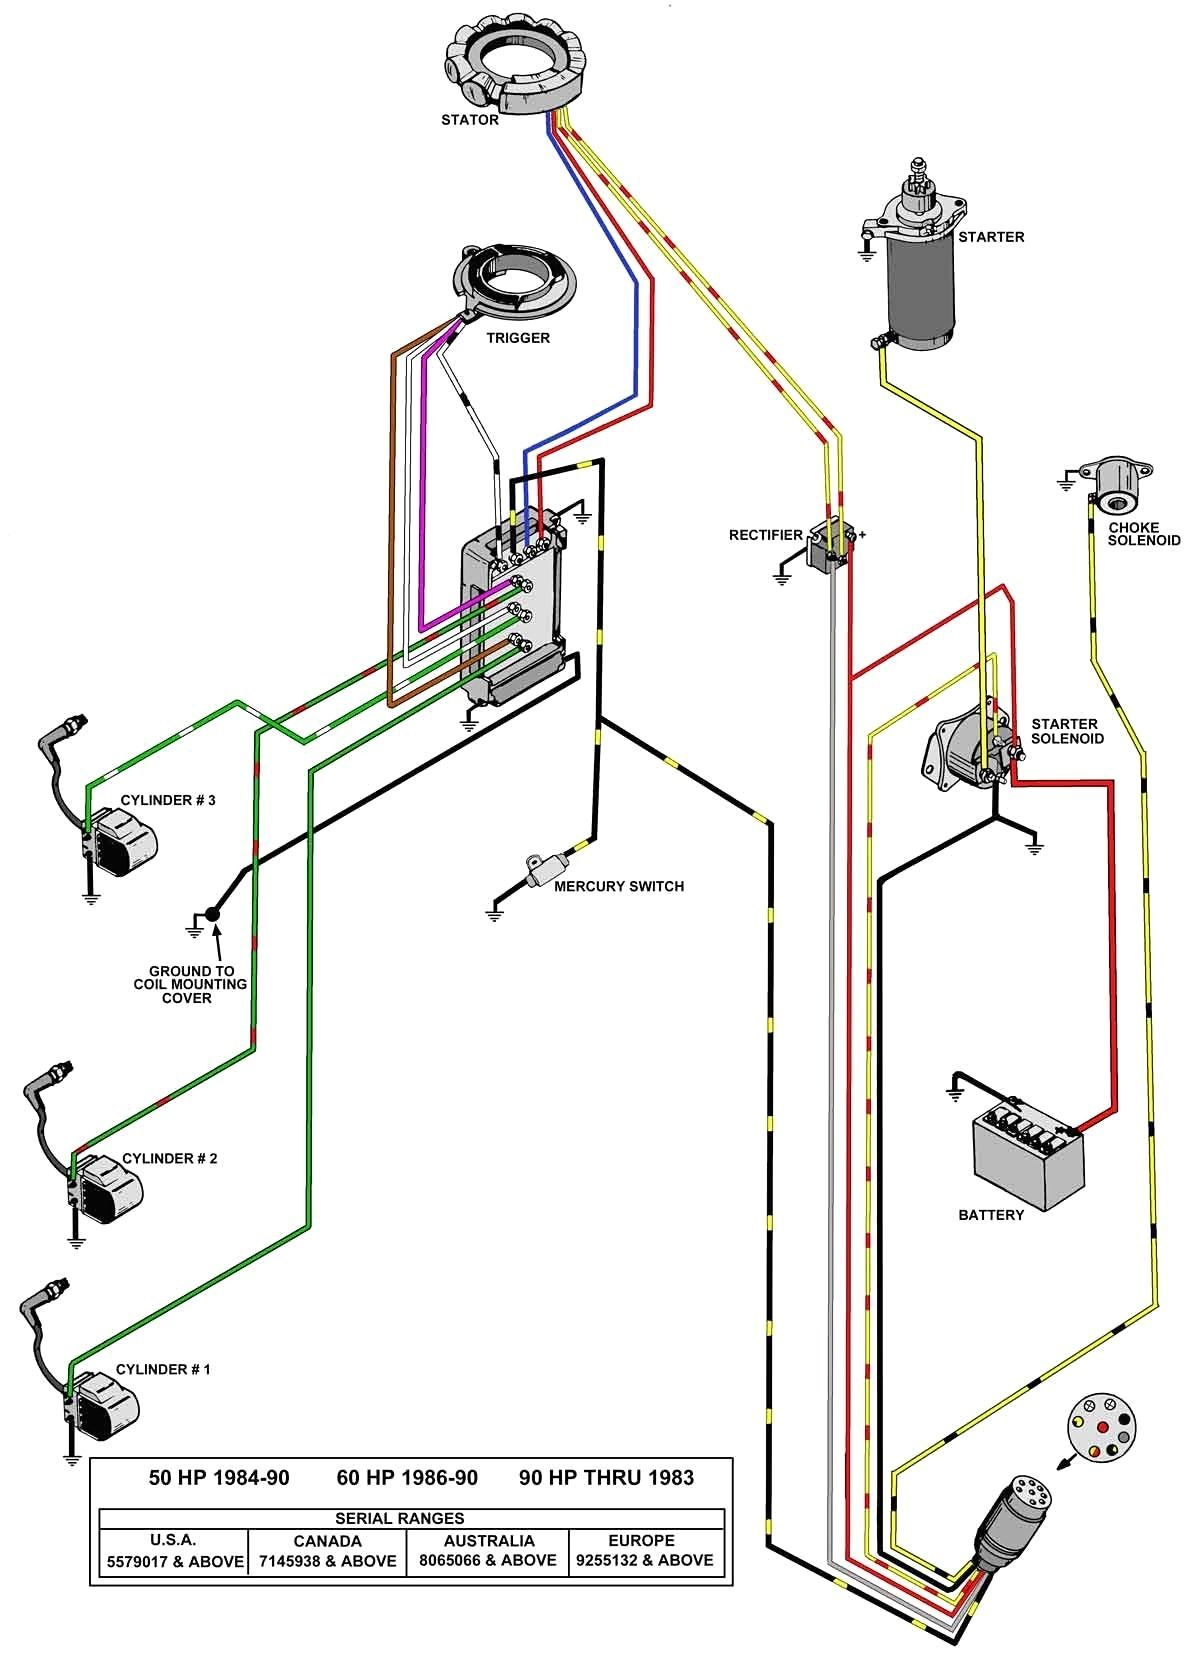 Ignition Switch Wiring Diagrams - Today Wiring Diagram - Mtd Ignition Switch Wiring Diagram